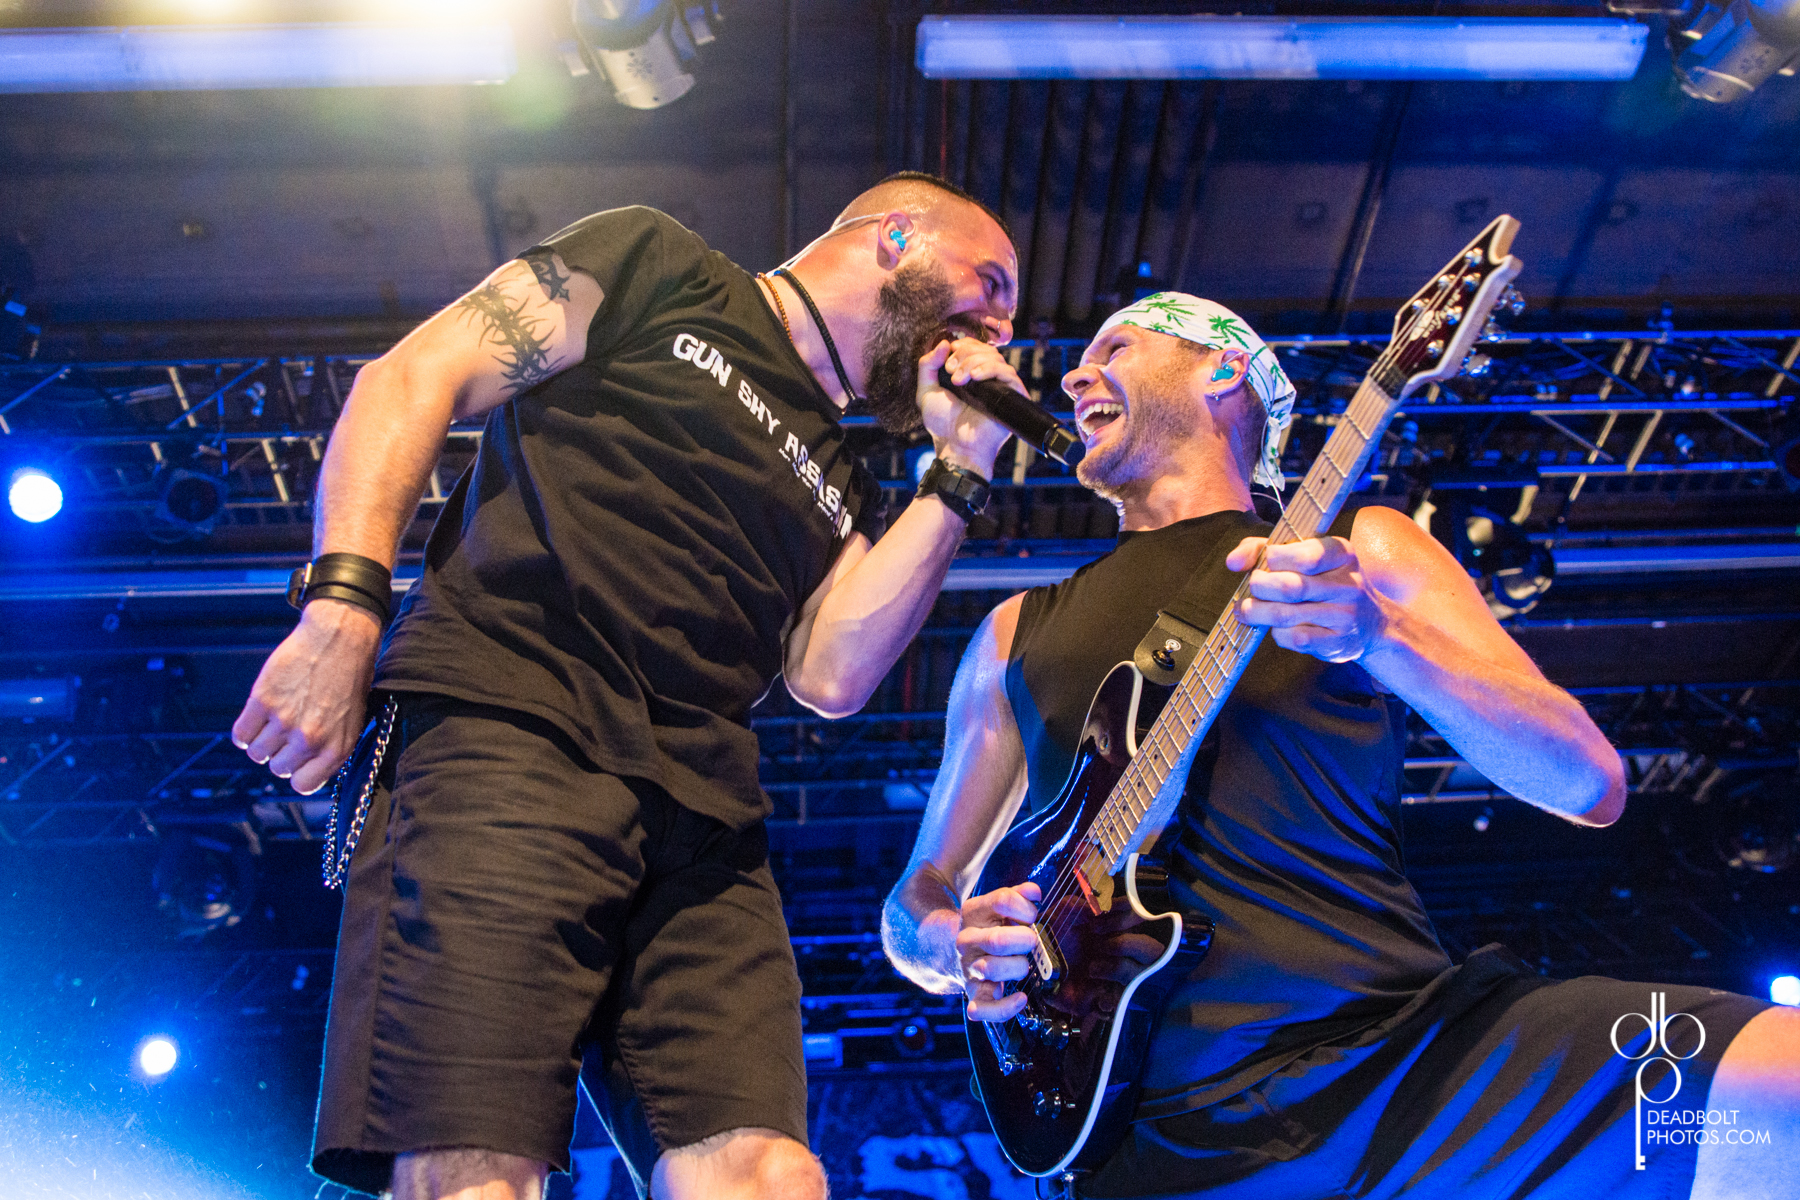 Jesse and Adam of Killswitch Engage